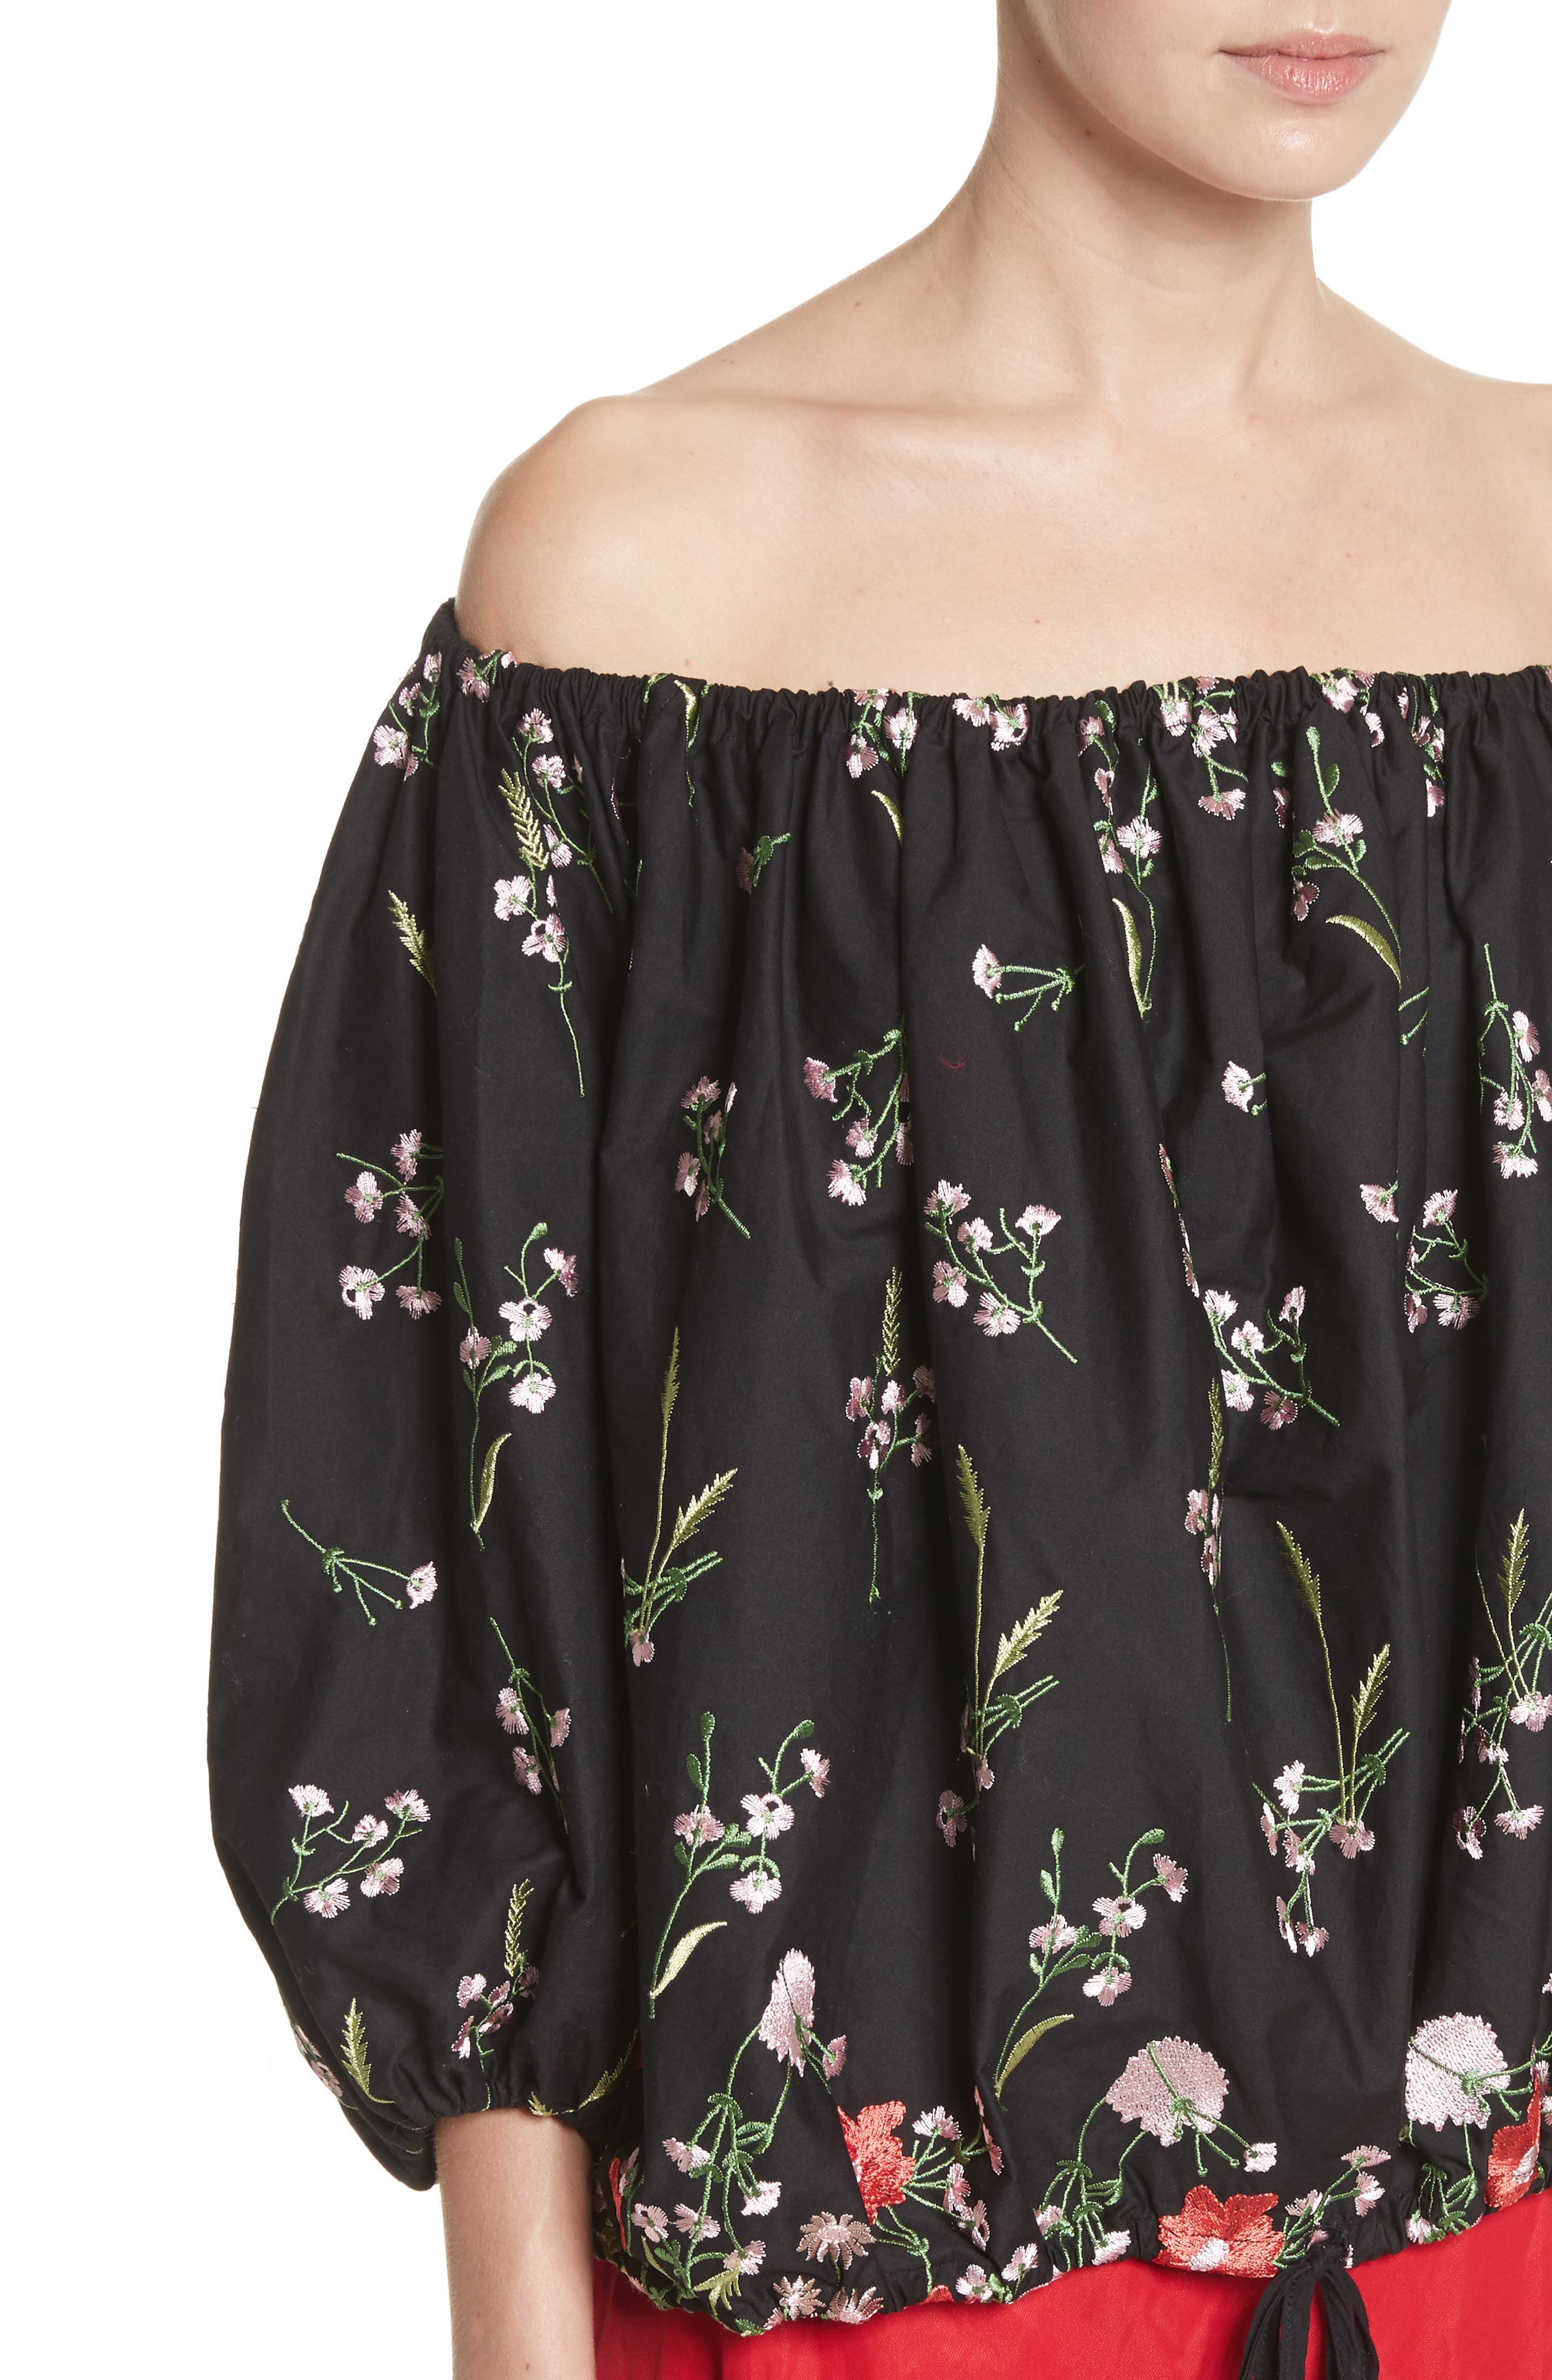 Marques'Almeida Embroidered Off the Shoulder Top,                             Alternate thumbnail 4, color,